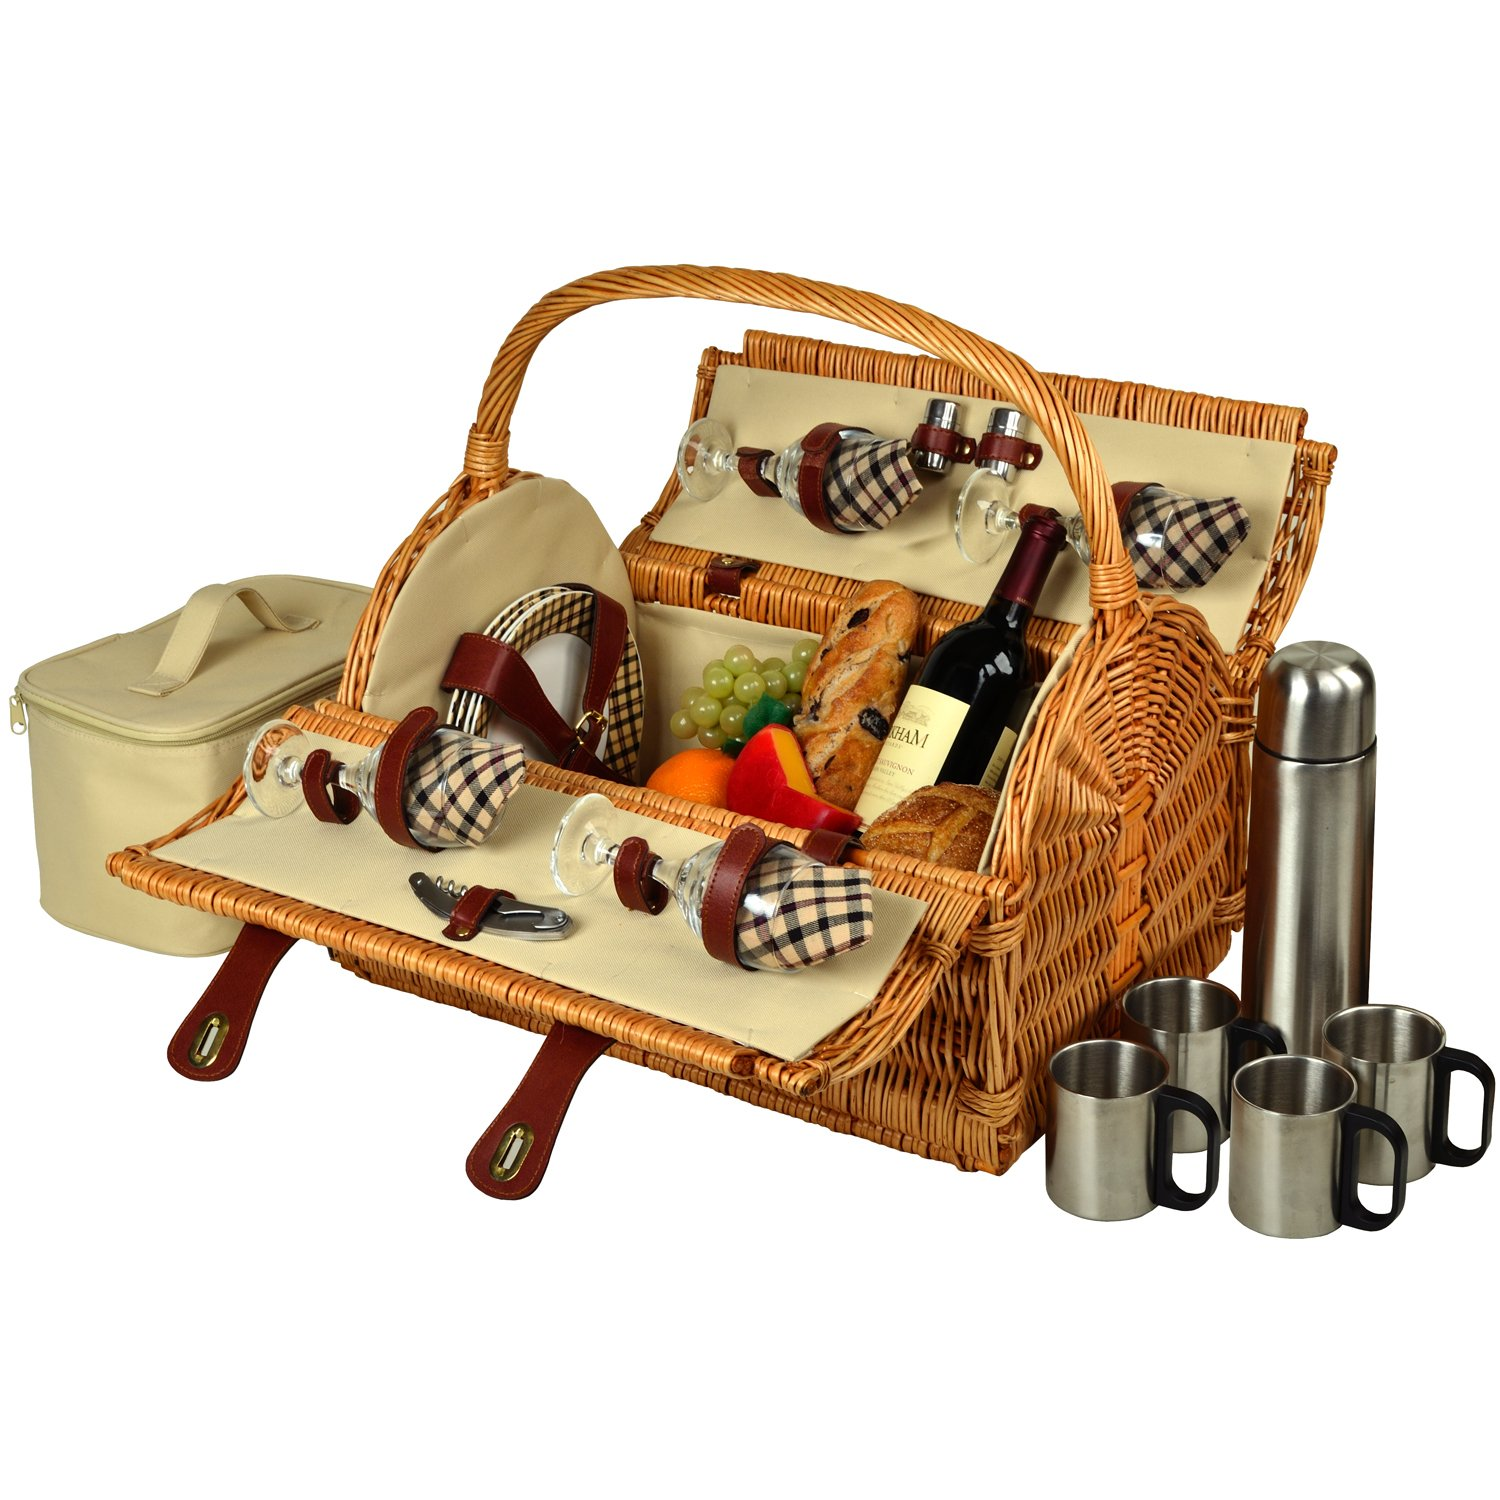 Picnic at Ascot Yorkshire Willow Picnic Basket with Service for 4,  Coffee Set and Blanket - London Plaid